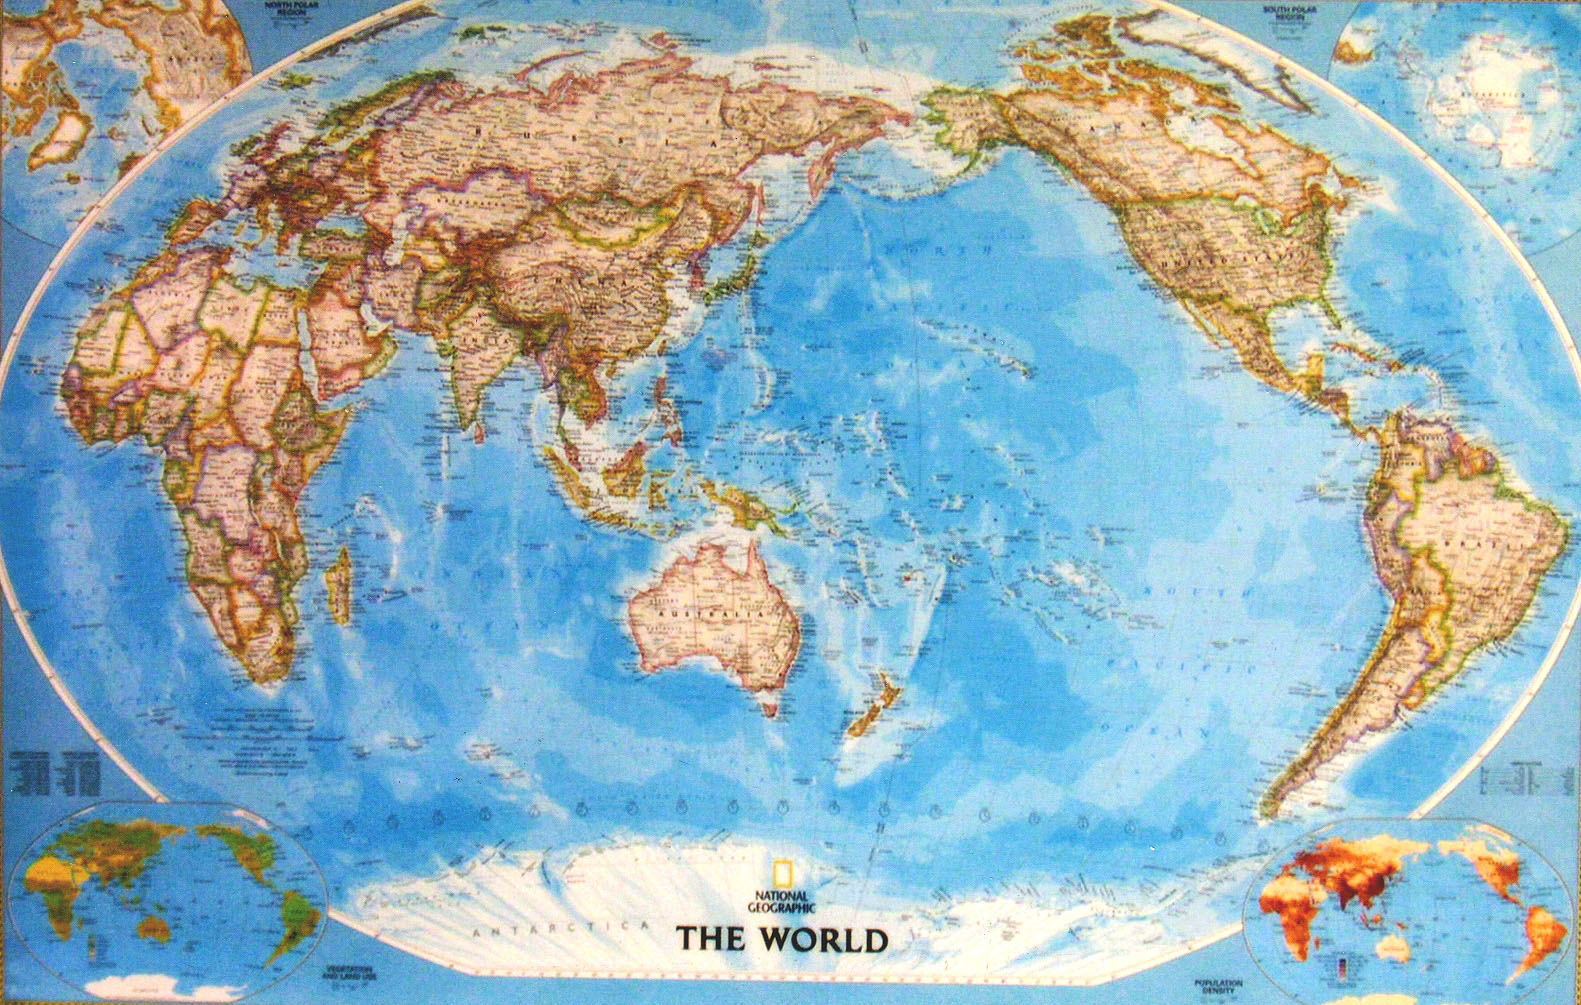 Mapco trading products services laminated hema nat geo world map classic pacific centre size 46x 30 retails price s4200 wgst sciox Images